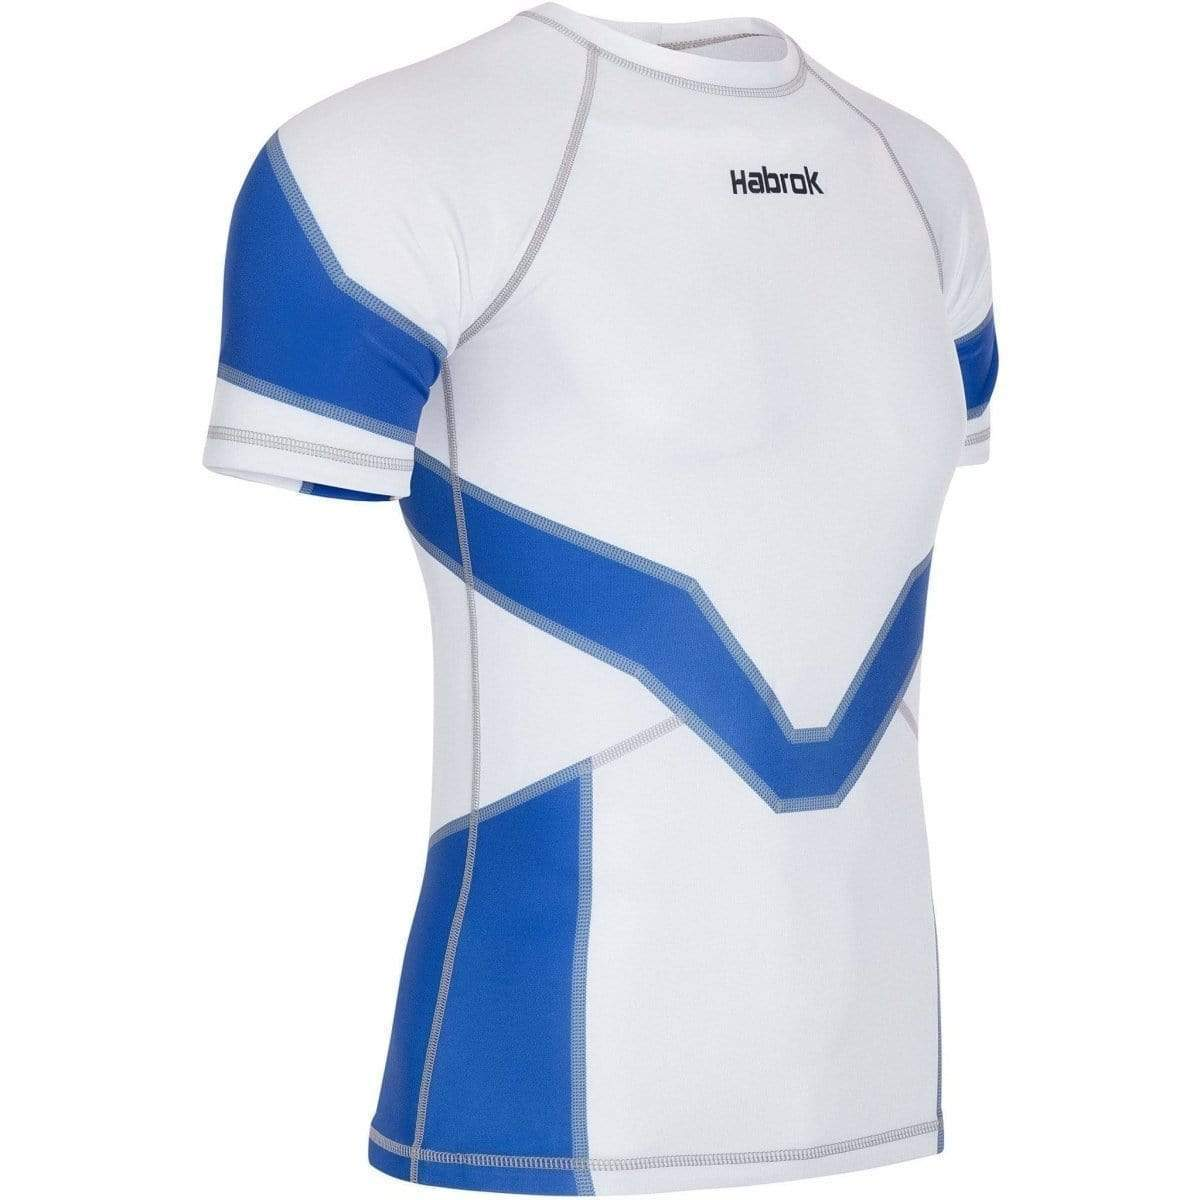 Habrok Rash Guard S / BLUE Transform 2.0 | Ranked Rash Guard Men | Half Sleeve | Men